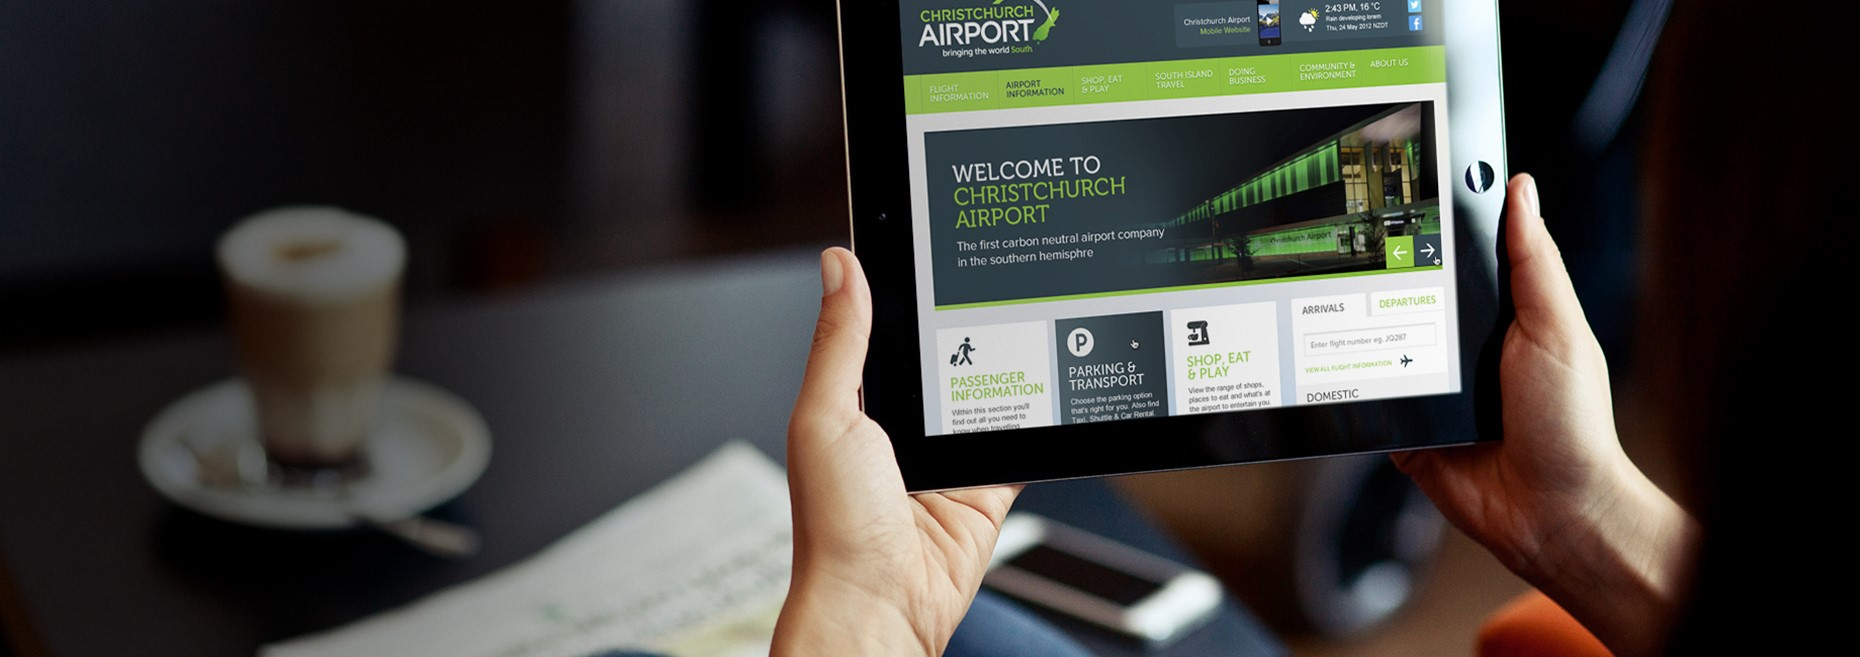 Christchurch Airport 2013 Homepage On A Tablet